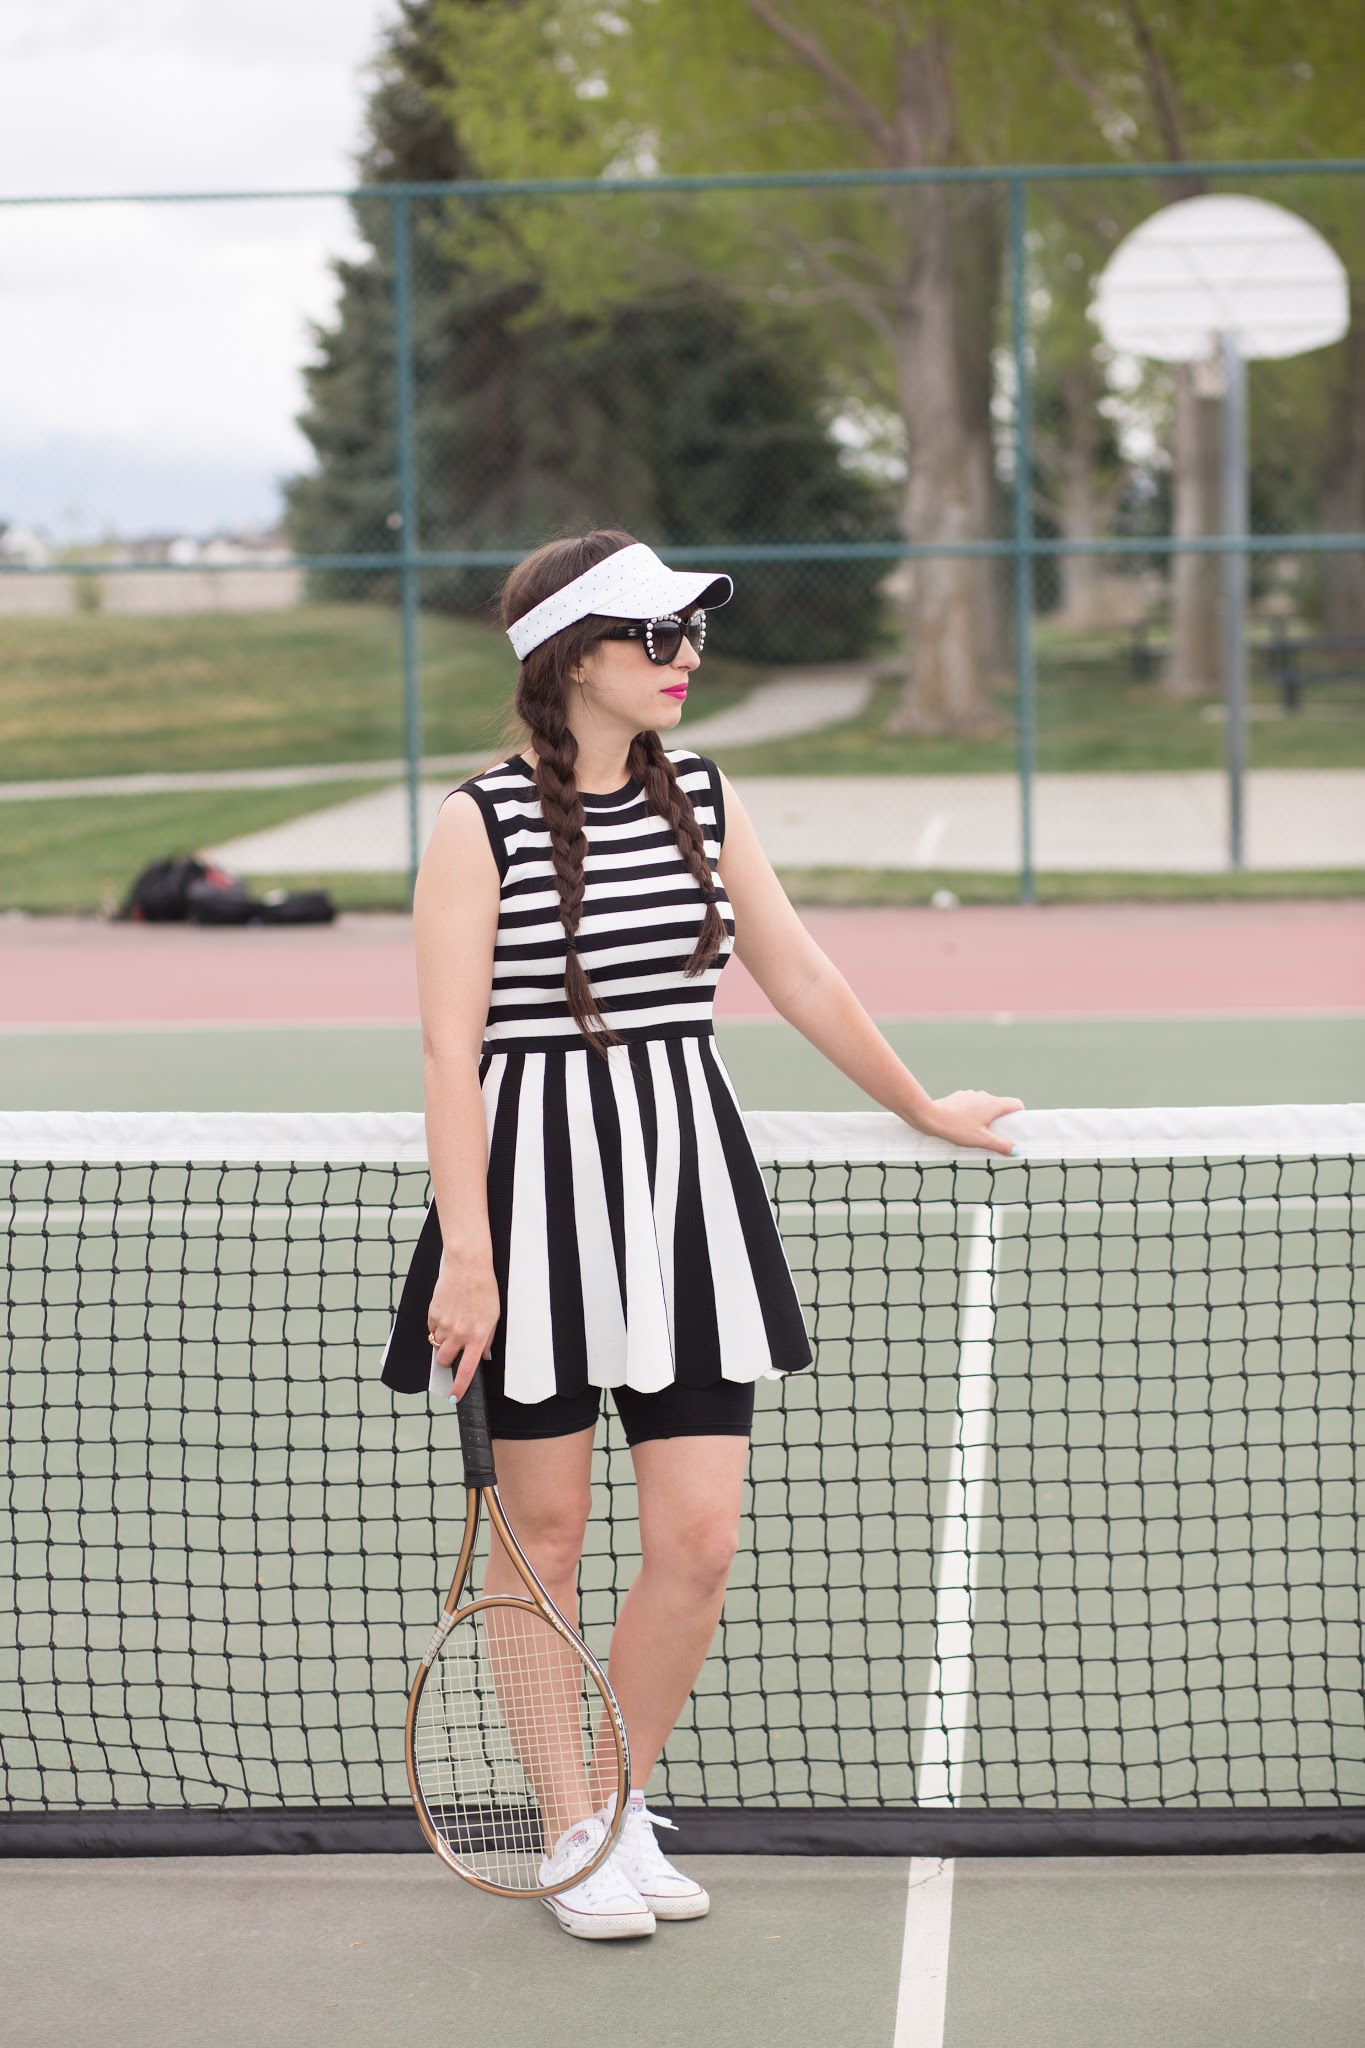 black and white tennis dress